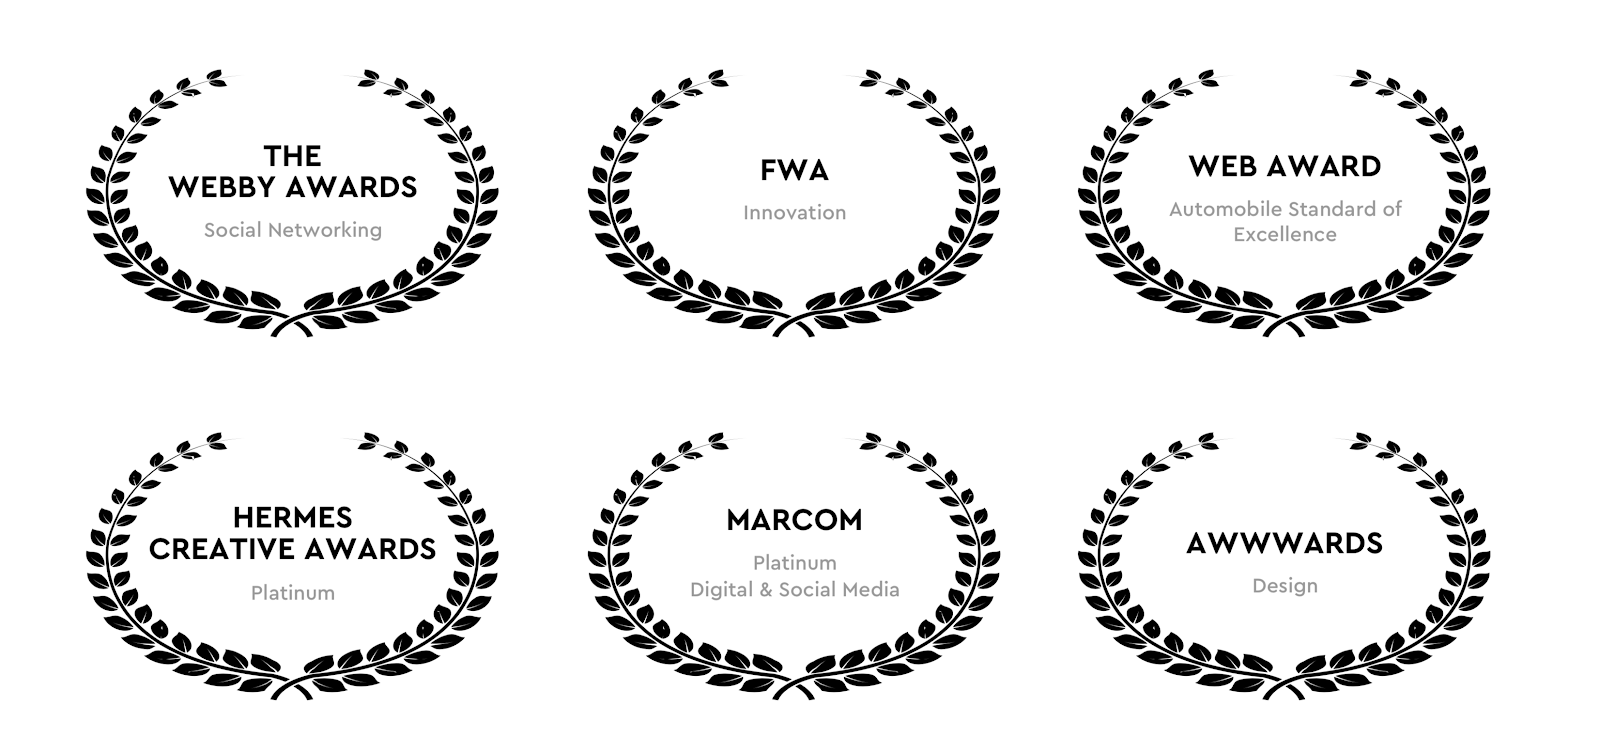 a list of awards given to rareview: the webby awards for social networking, FWA for innovation, Web Award for automobile standard of excellence, awwwards for design, platinum from hermes creative awards, platinum award for digital and social media from marcom.